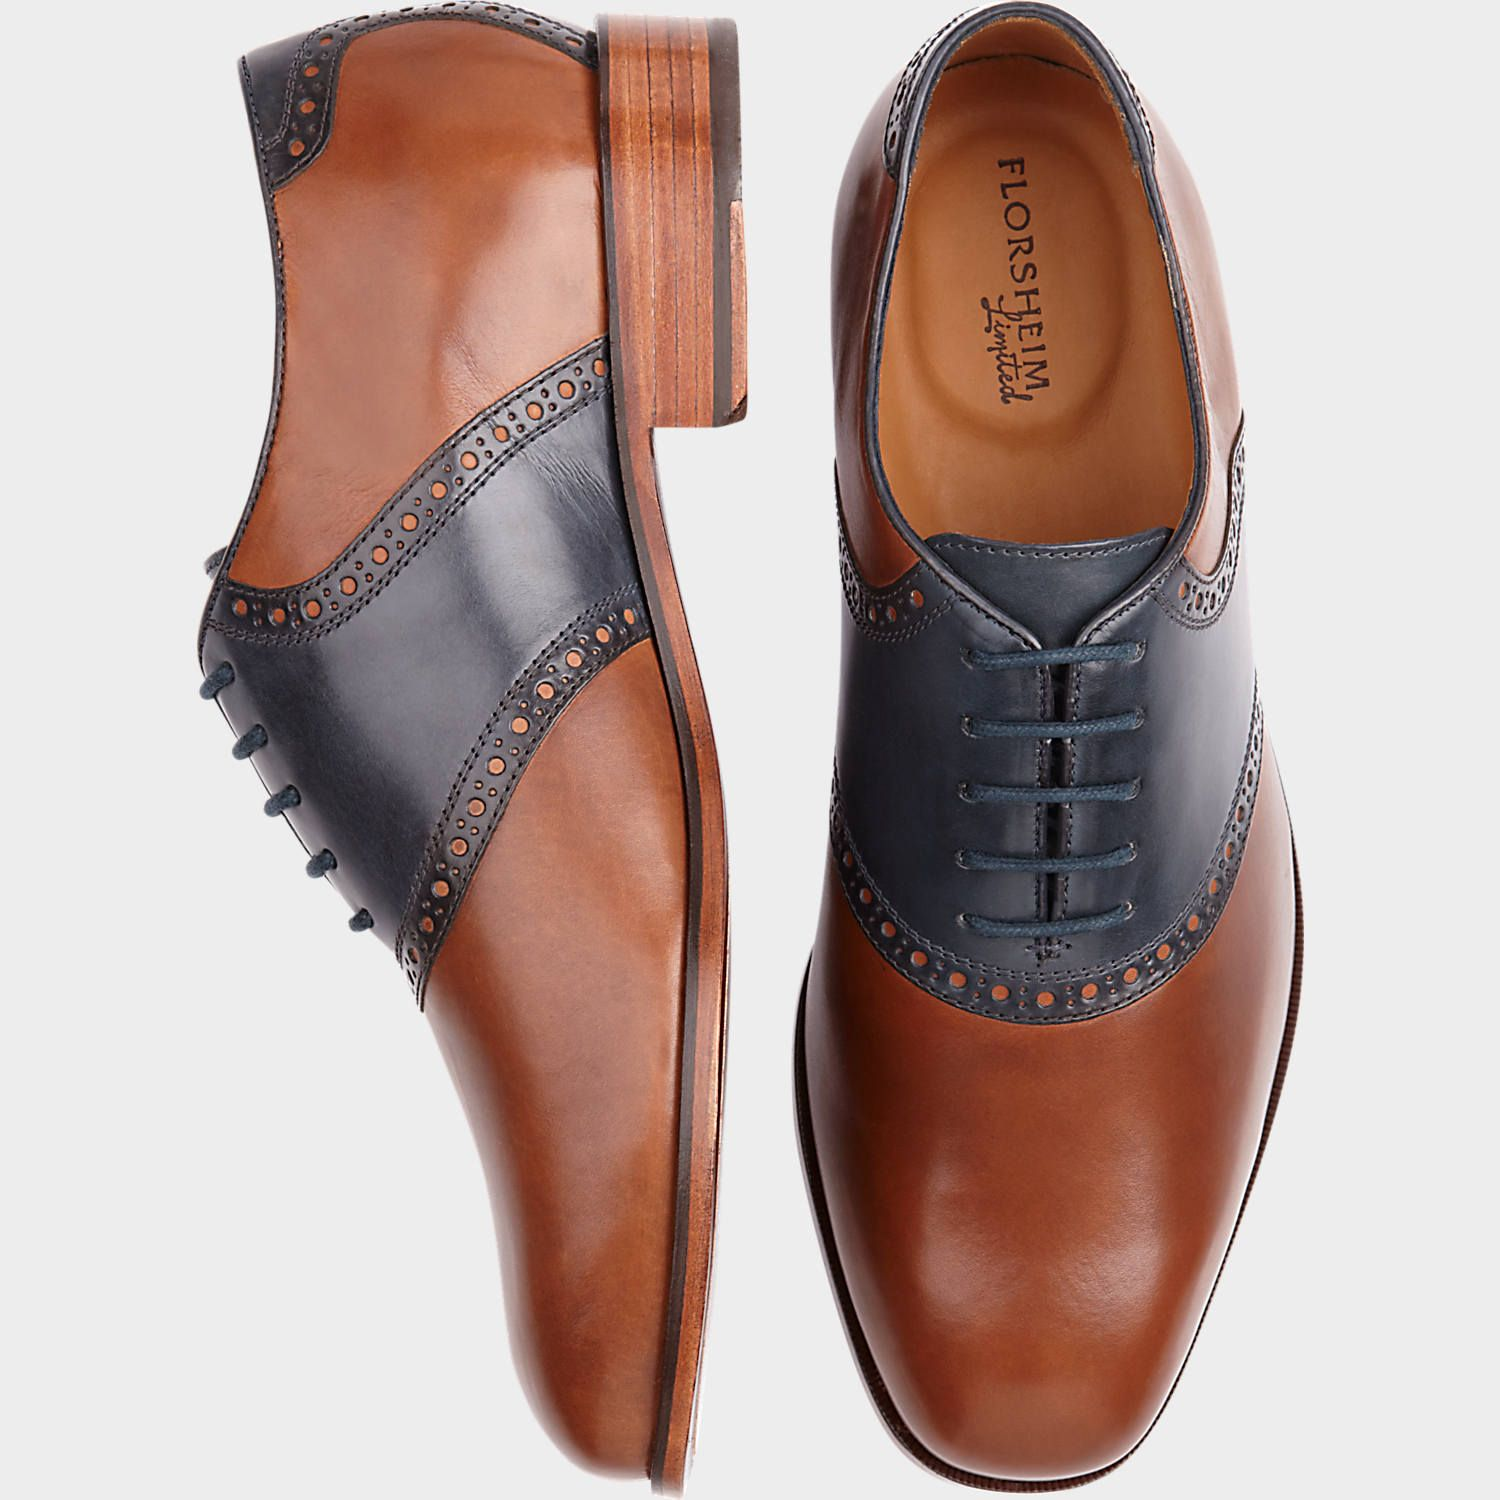 Florsheim Cognac and Navy Oxford Saddle Shoes | Mens Wearhouse ...